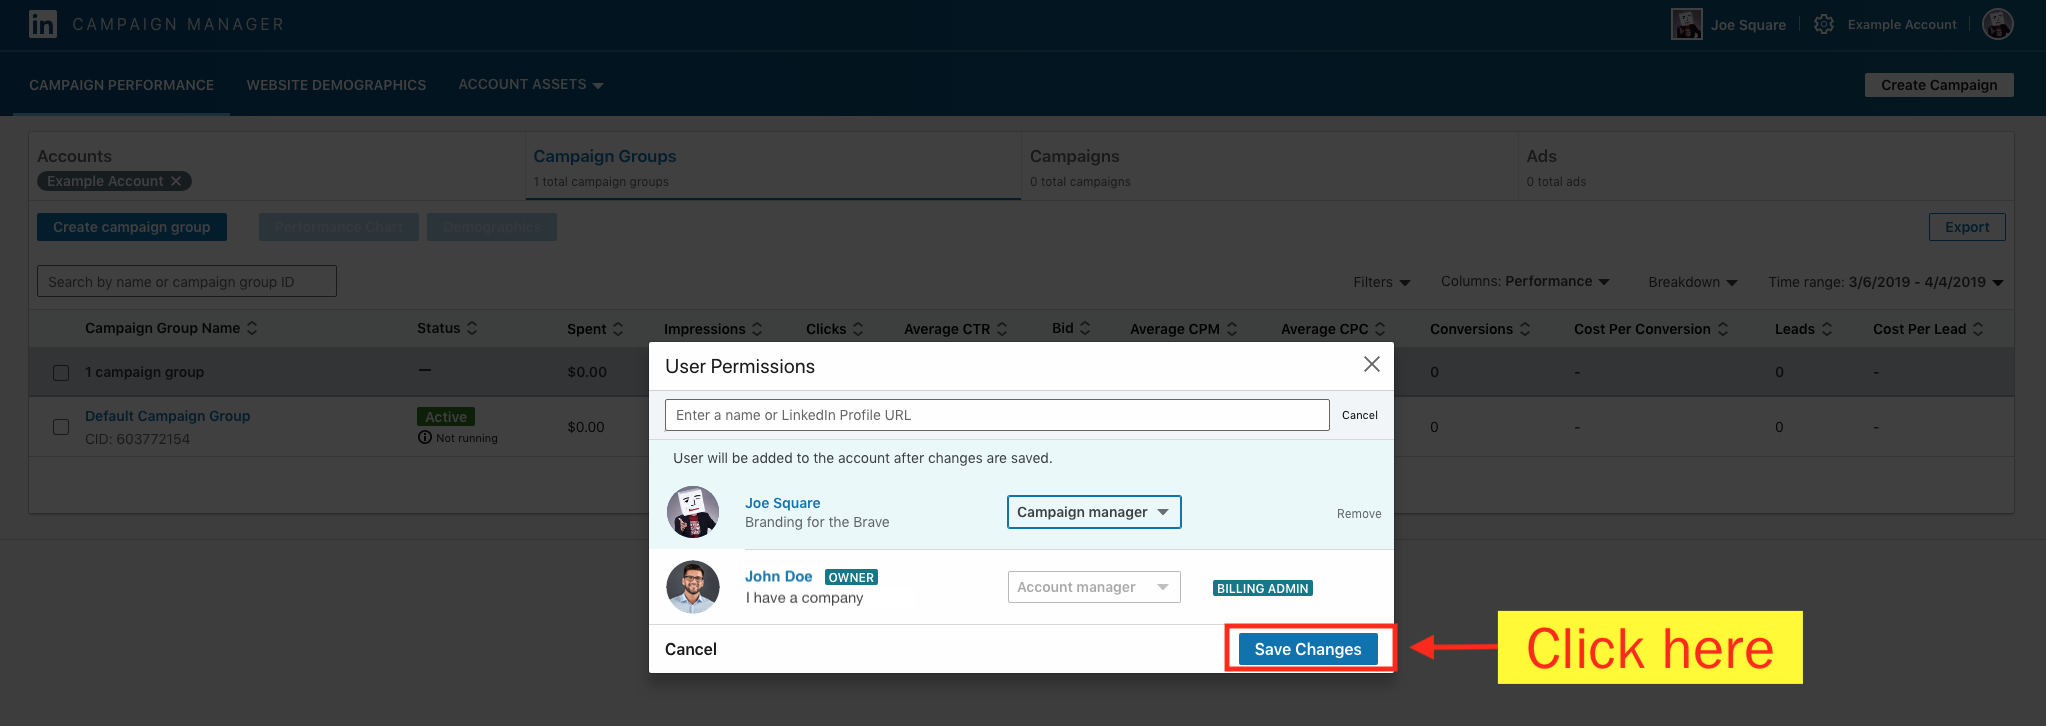 Add a Campaign Manager to Your LinkedIn Ad Account - Step 11 Screenshot